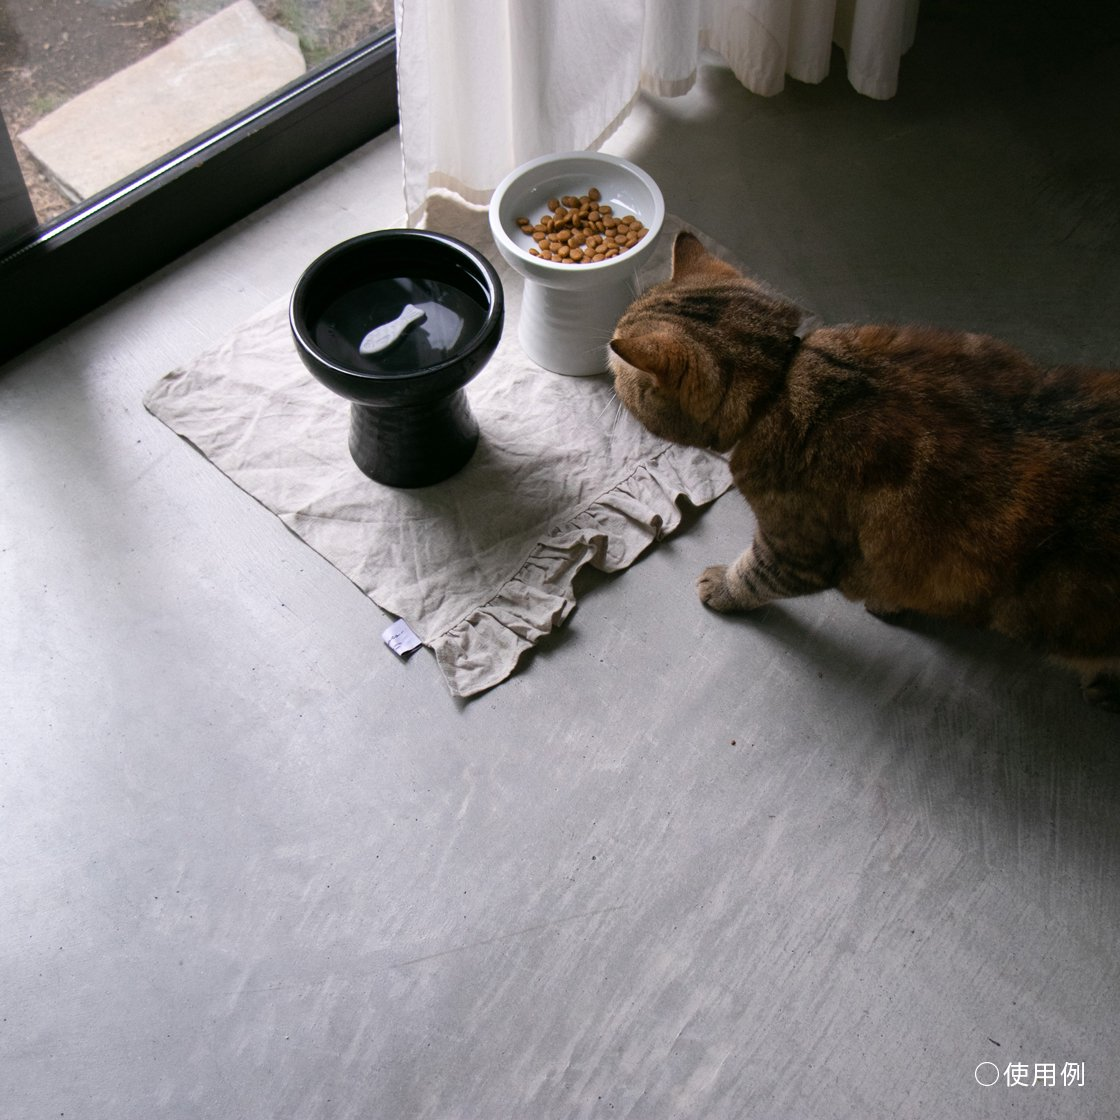 <img class='new_mark_img1' src='https://img.shop-pro.jp/img/new/icons57.gif' style='border:none;display:inline;margin:0px;padding:0px;width:auto;' />Classy Bowl【5インチ】ブラック  Made in Japan